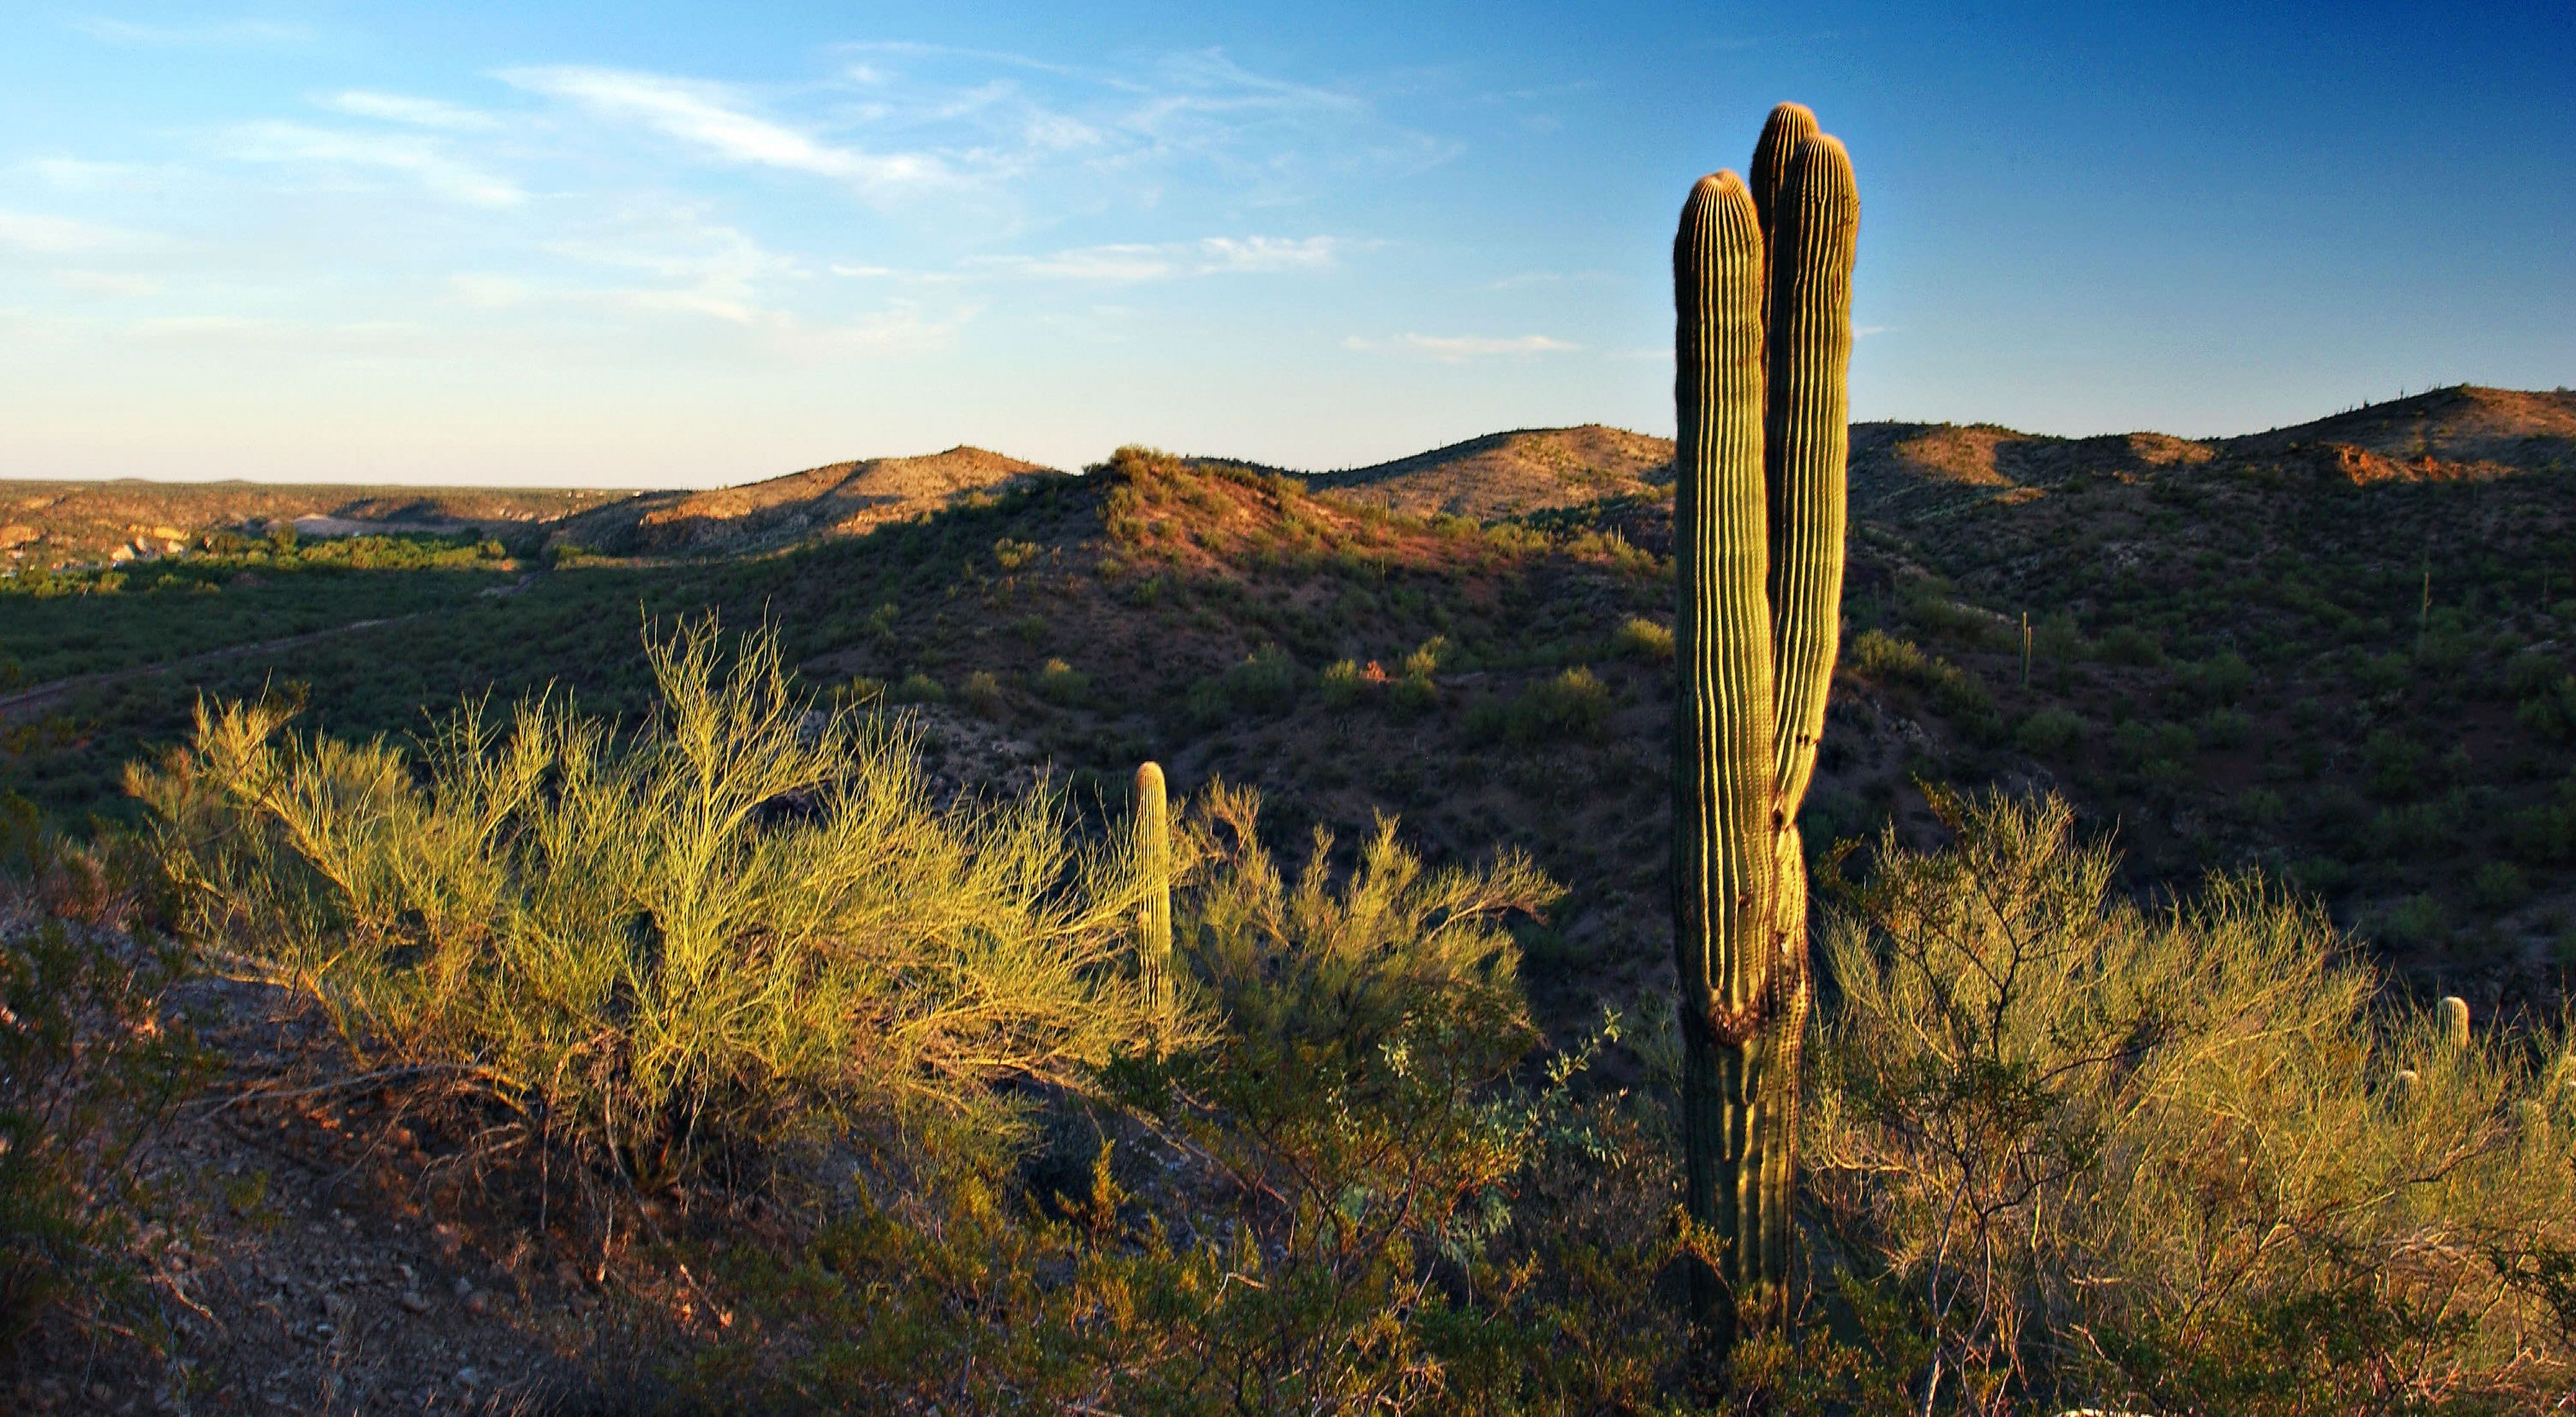 Sunset view of a desert landscape with a cactus in the